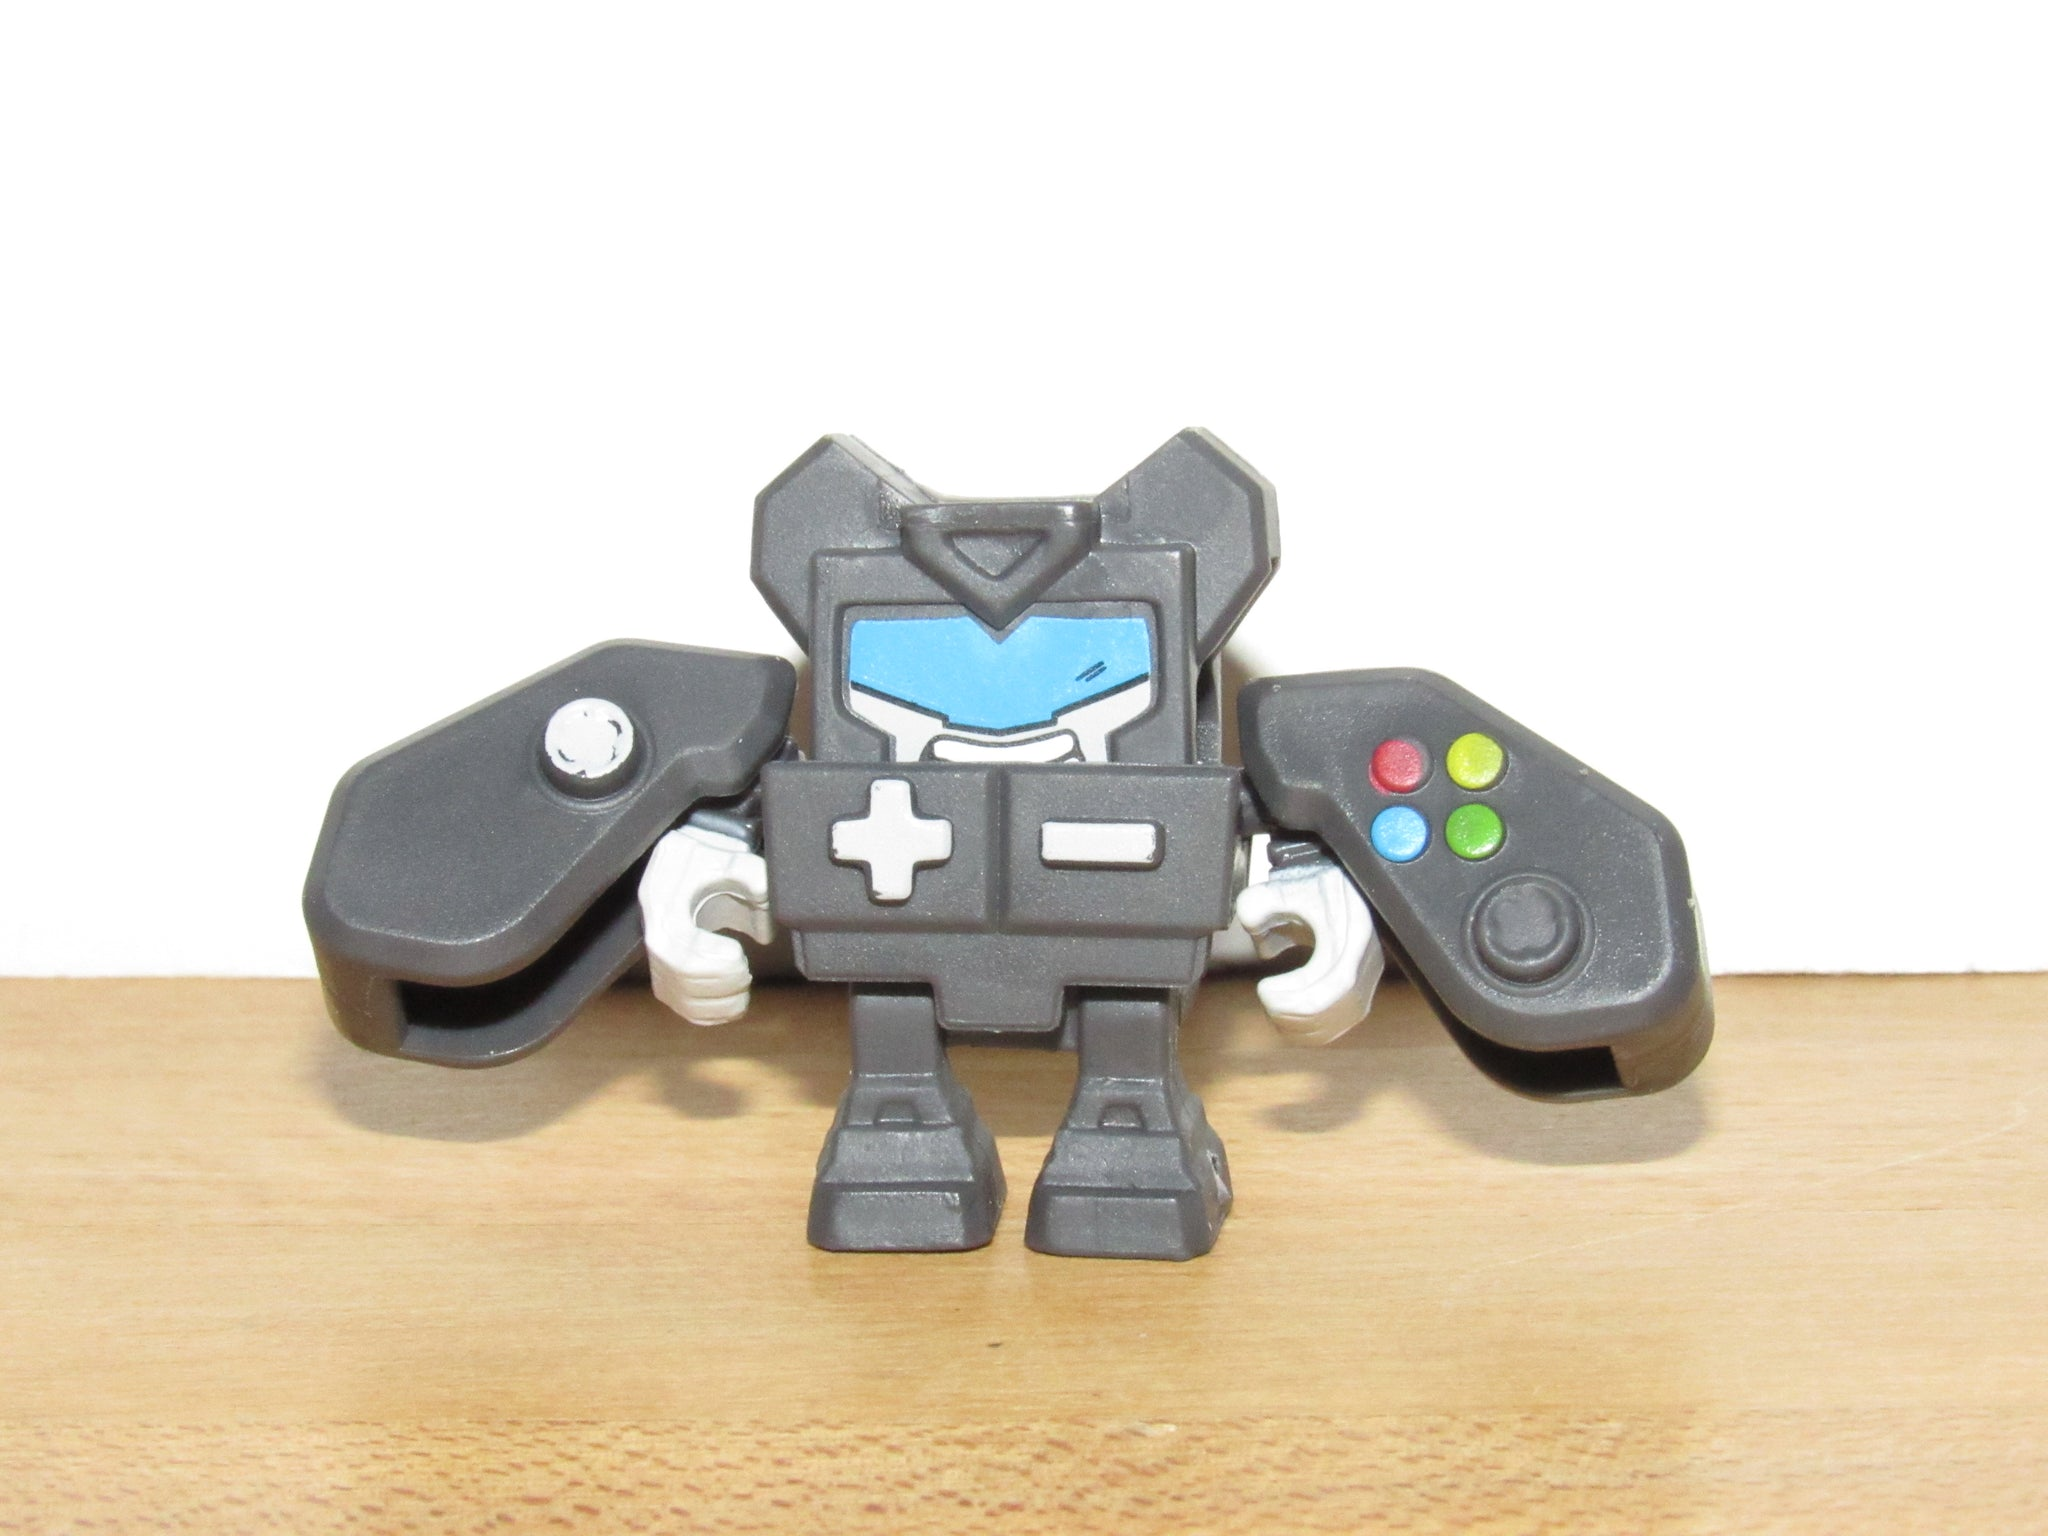 Transformers Botbots The Lost Bots Game Over (Video Game Controller)